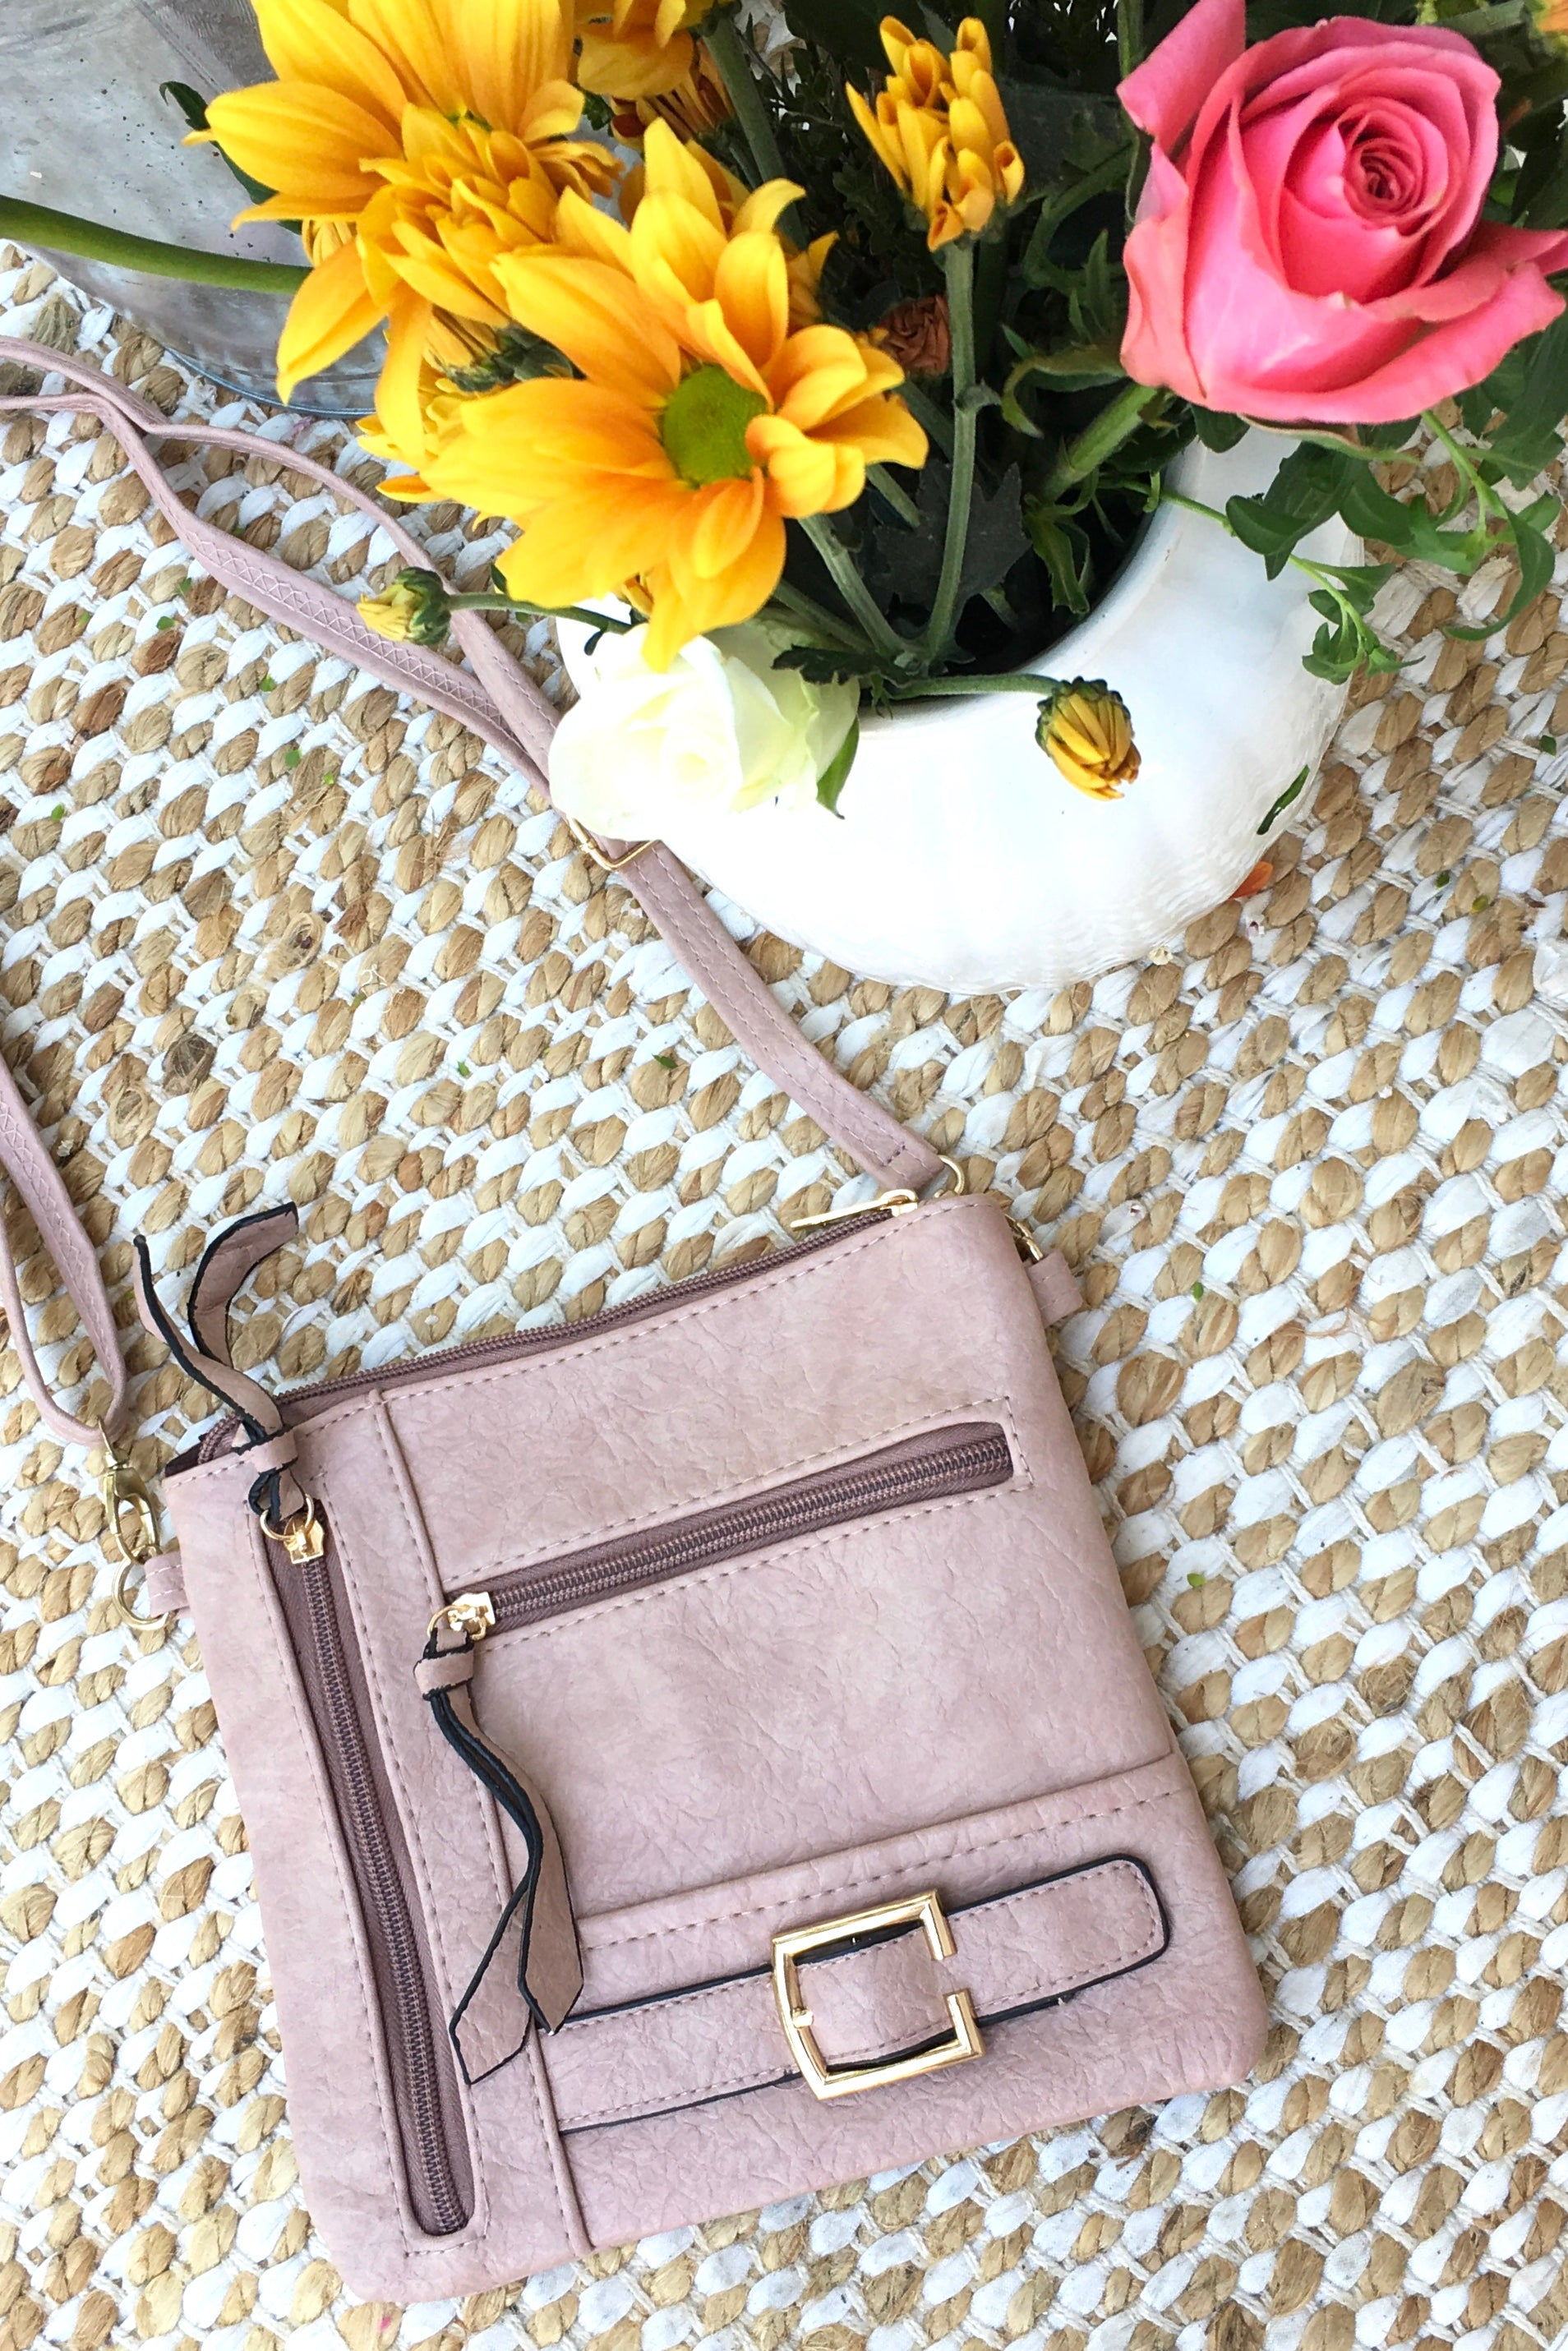 Bag Yeah Cross Body in a neutral blush colour, vegan leather with adjustable strap, miniature crossbody bag perfect for evening wear.